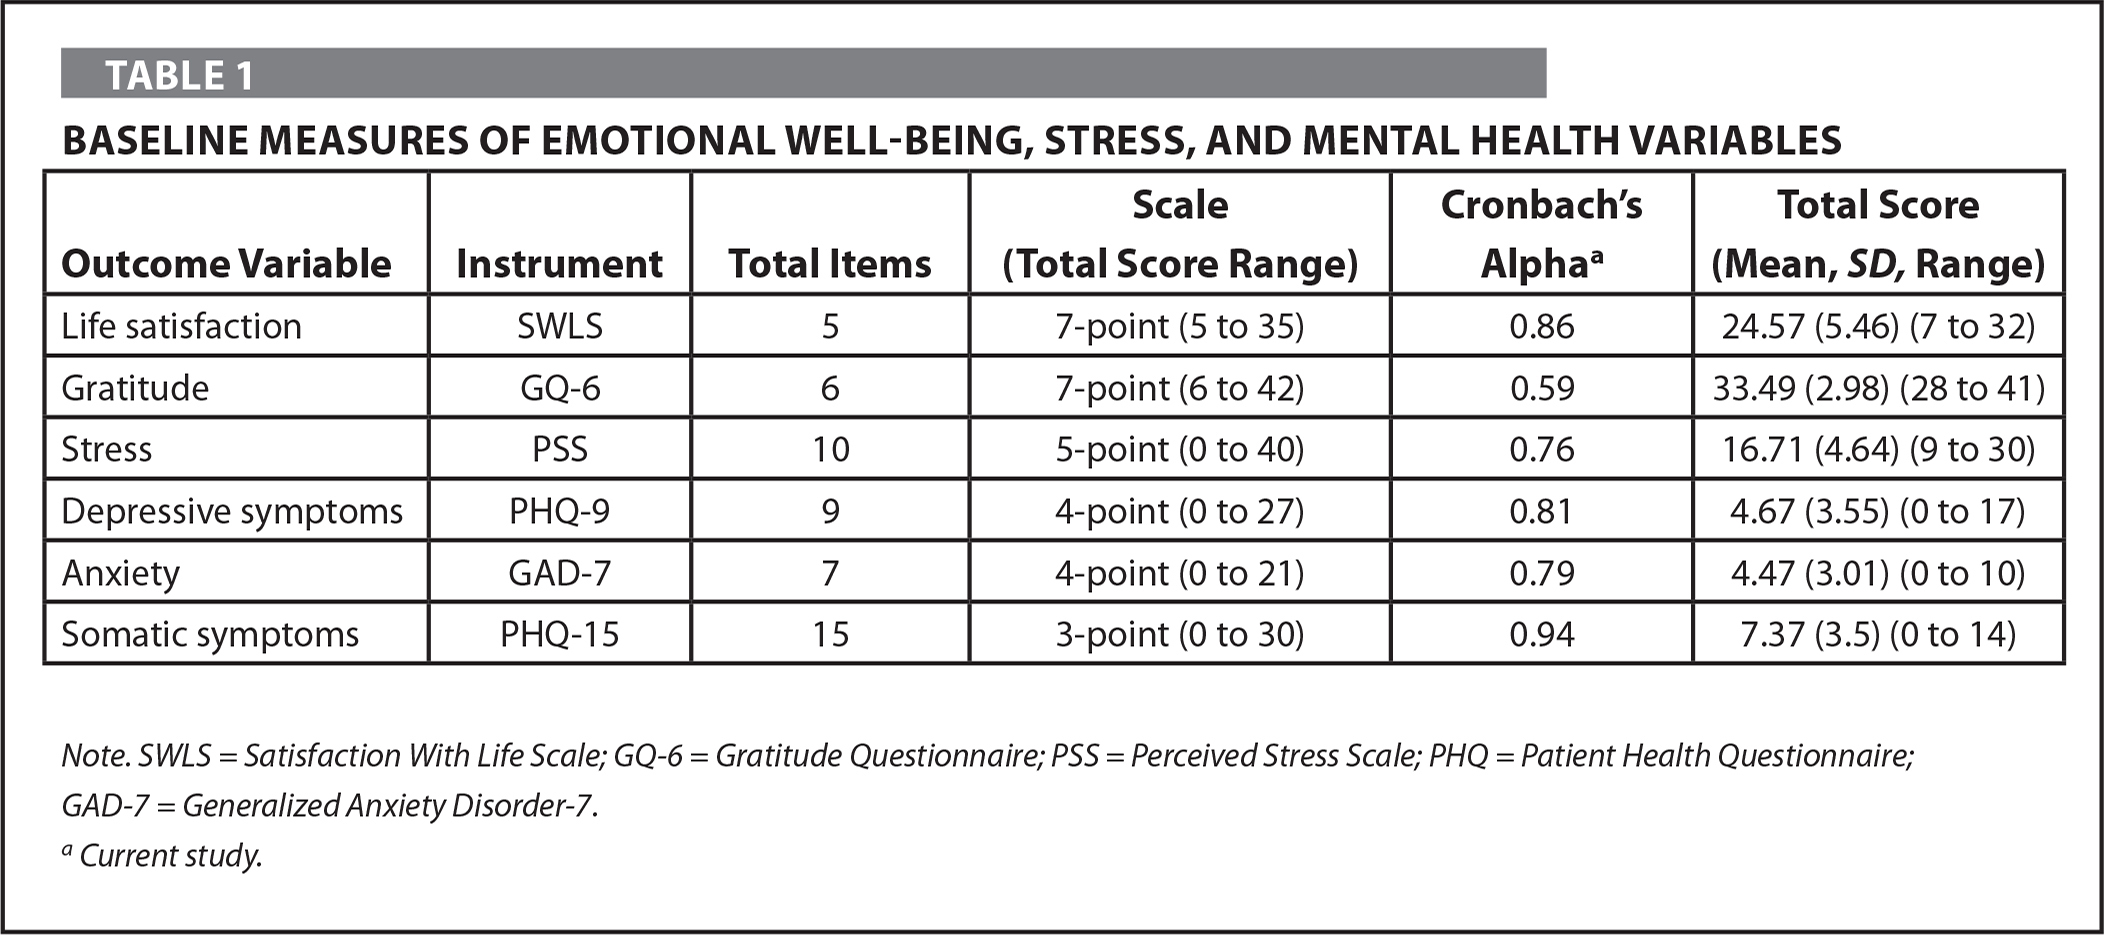 Baseline Measures of Emotional Well-Being, Stress, and Mental Health Variables